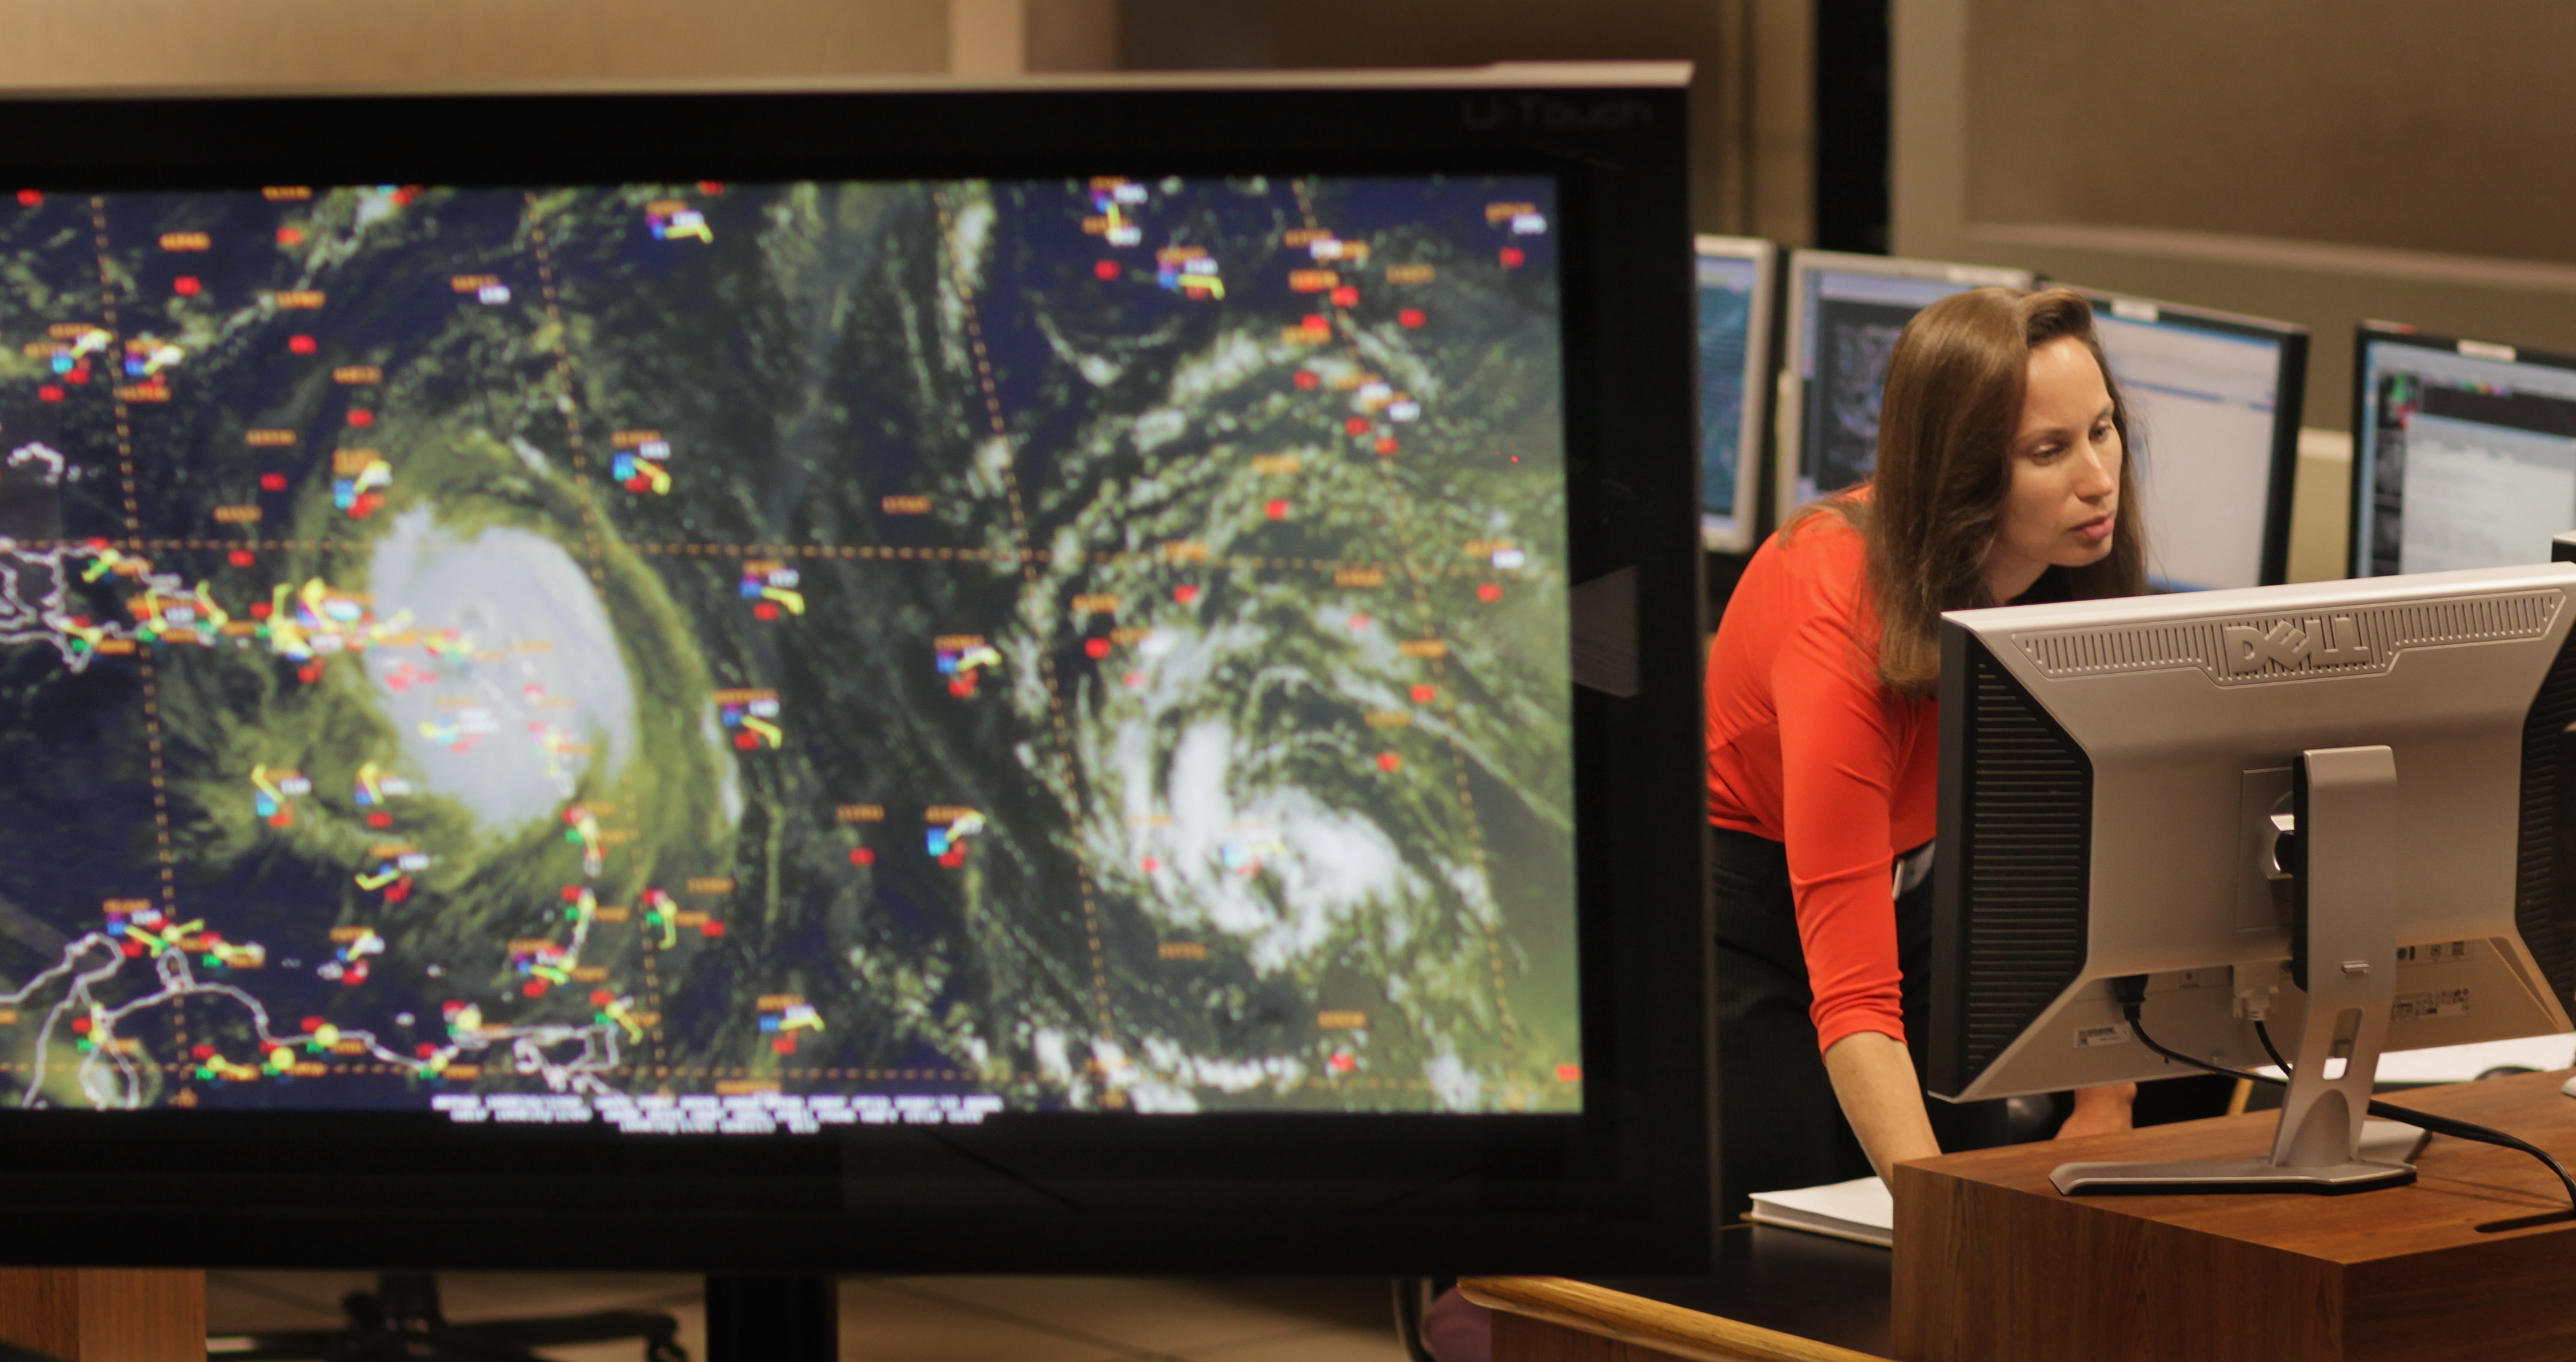 National Hurricane Center Monitors Hurricane Earl As It Tracks Towards U.S.